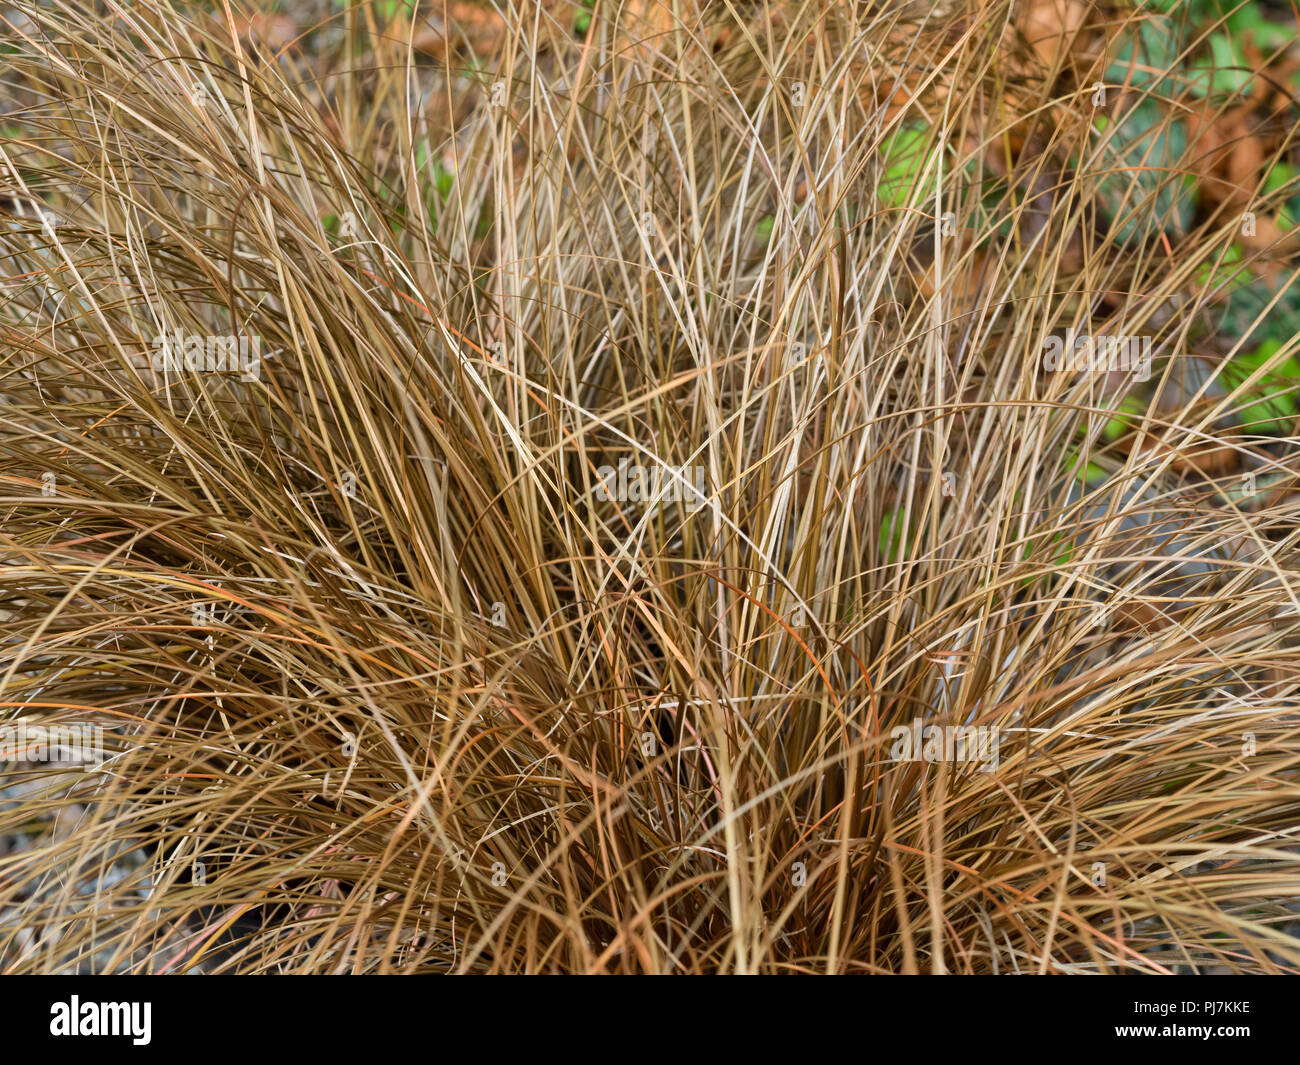 Narrow bronze foliage of the evergreen, mound forming, weeping brown sedge, Carex flagellifera - Stock Image